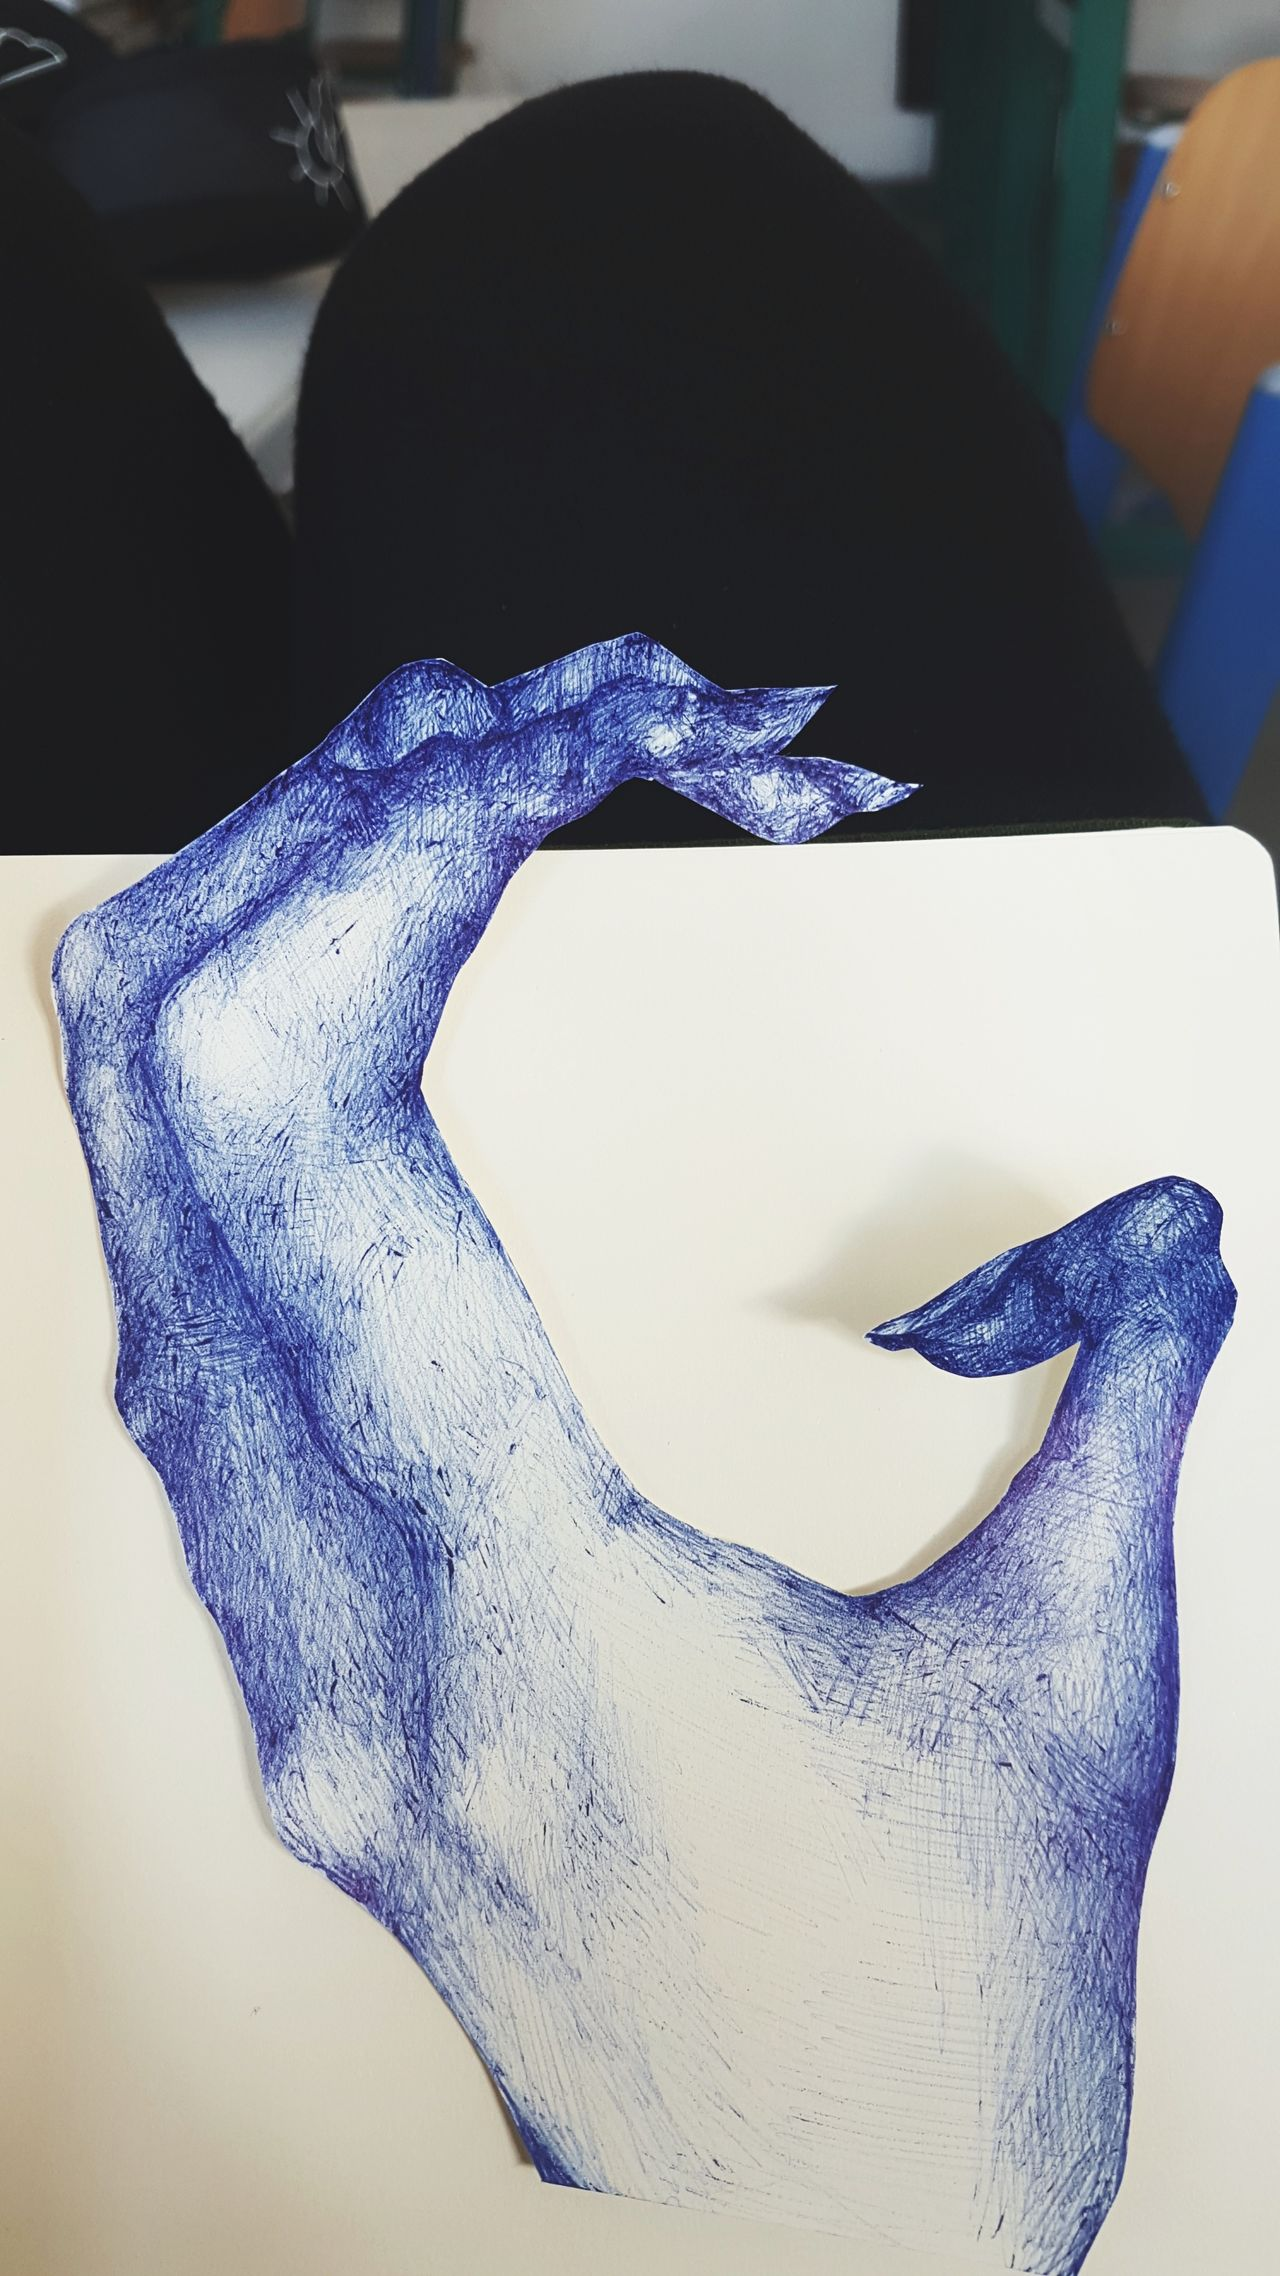 Human Body Part Motion Hand Moving Out Drawing - Art Product Drawing :) Drawing Artistic ArtWork Art, Drawing, Creativity Artistic Expression Handmade Outside Photography Human Hand Monster Inside Me Monster Horror Photography Horror In Nature Horrorart Horror Horror Art Artistic Photo Holding Flying High Day